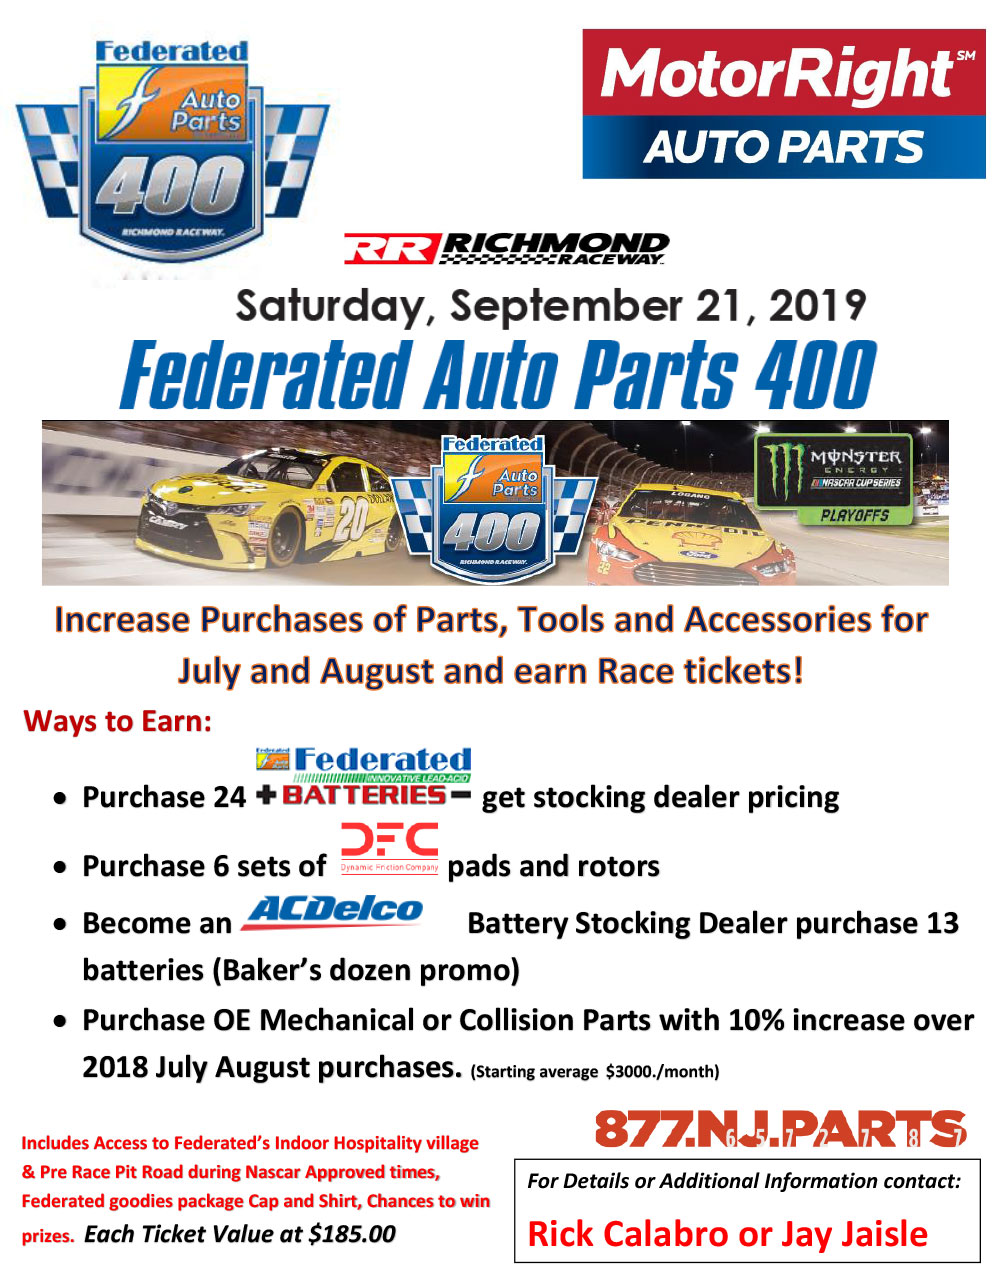 Federated-Race-event-Sept-21-2019.jpg